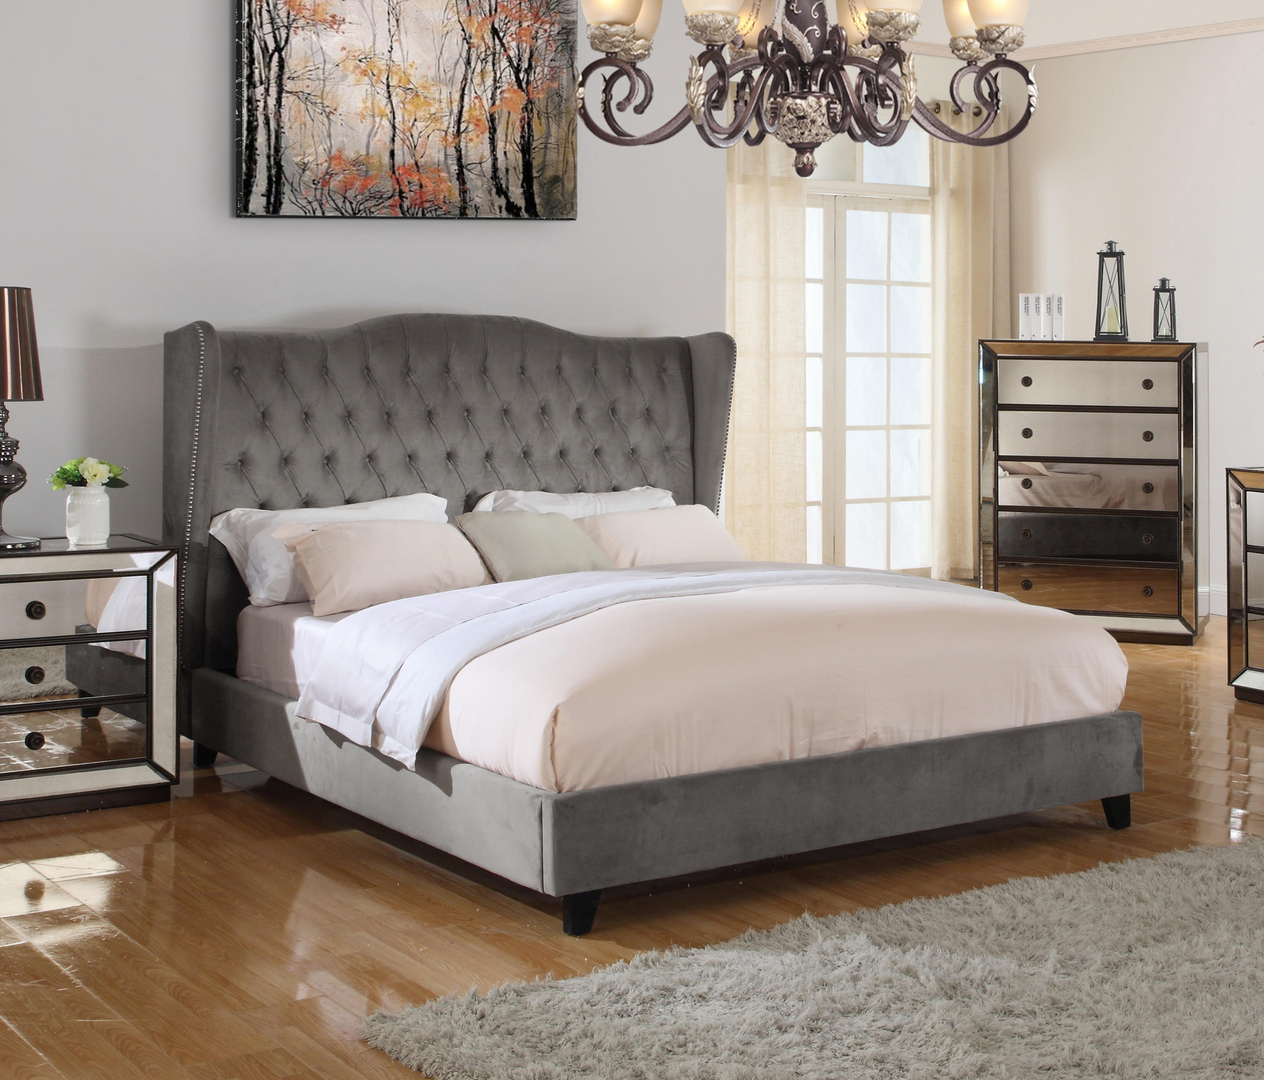 Joes Bed & Furniture - Furniture, Mattress, Furniture Sale